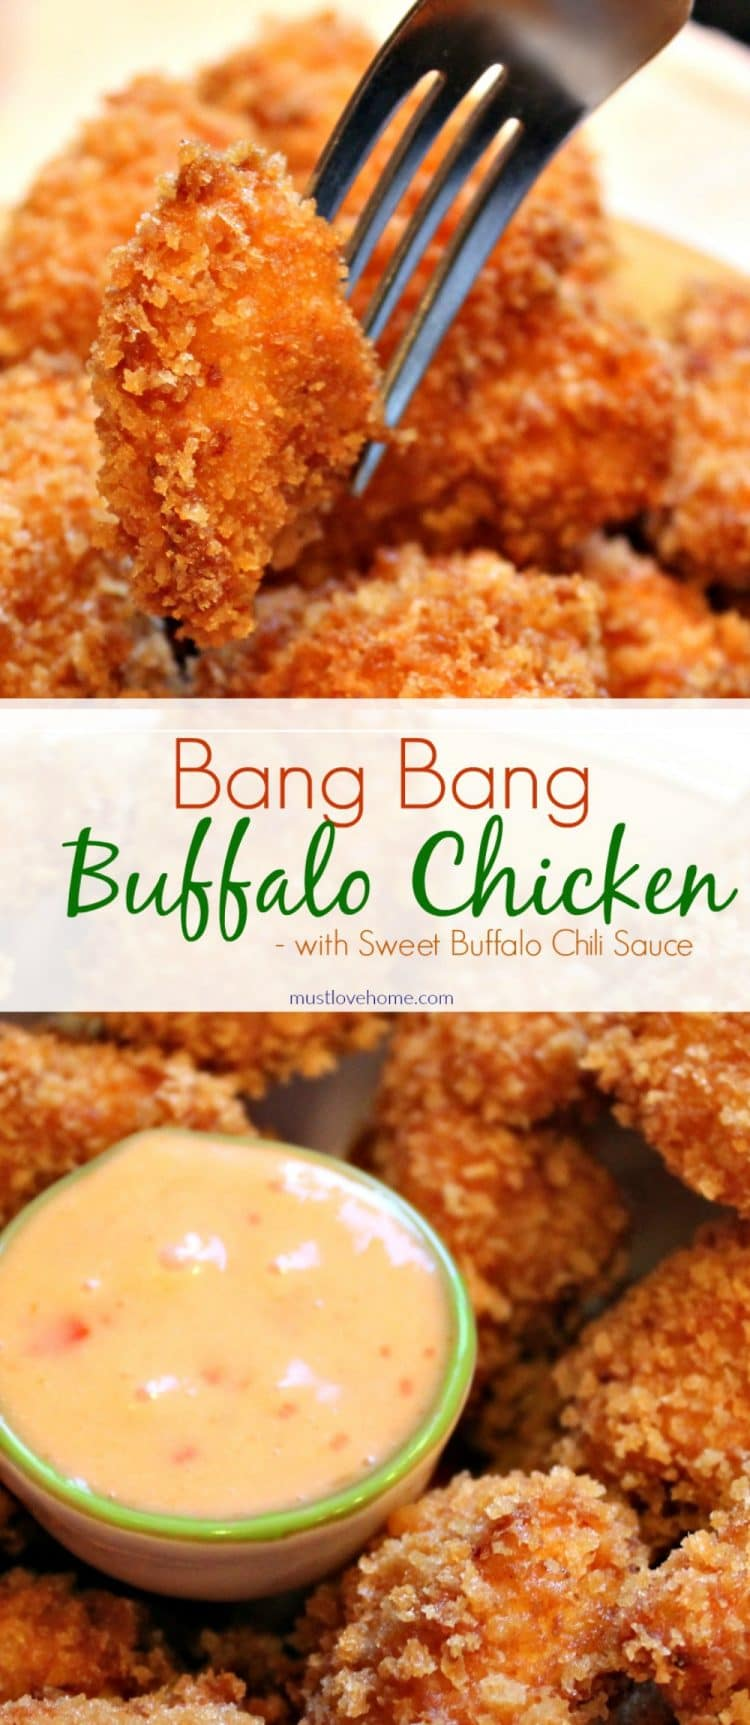 Bang Bang Buffalo Chicken - Amazingly moist and crunchy chicken bites served with a sweet buffalo chili dipping sauce - the perfect entree or party appetizer.